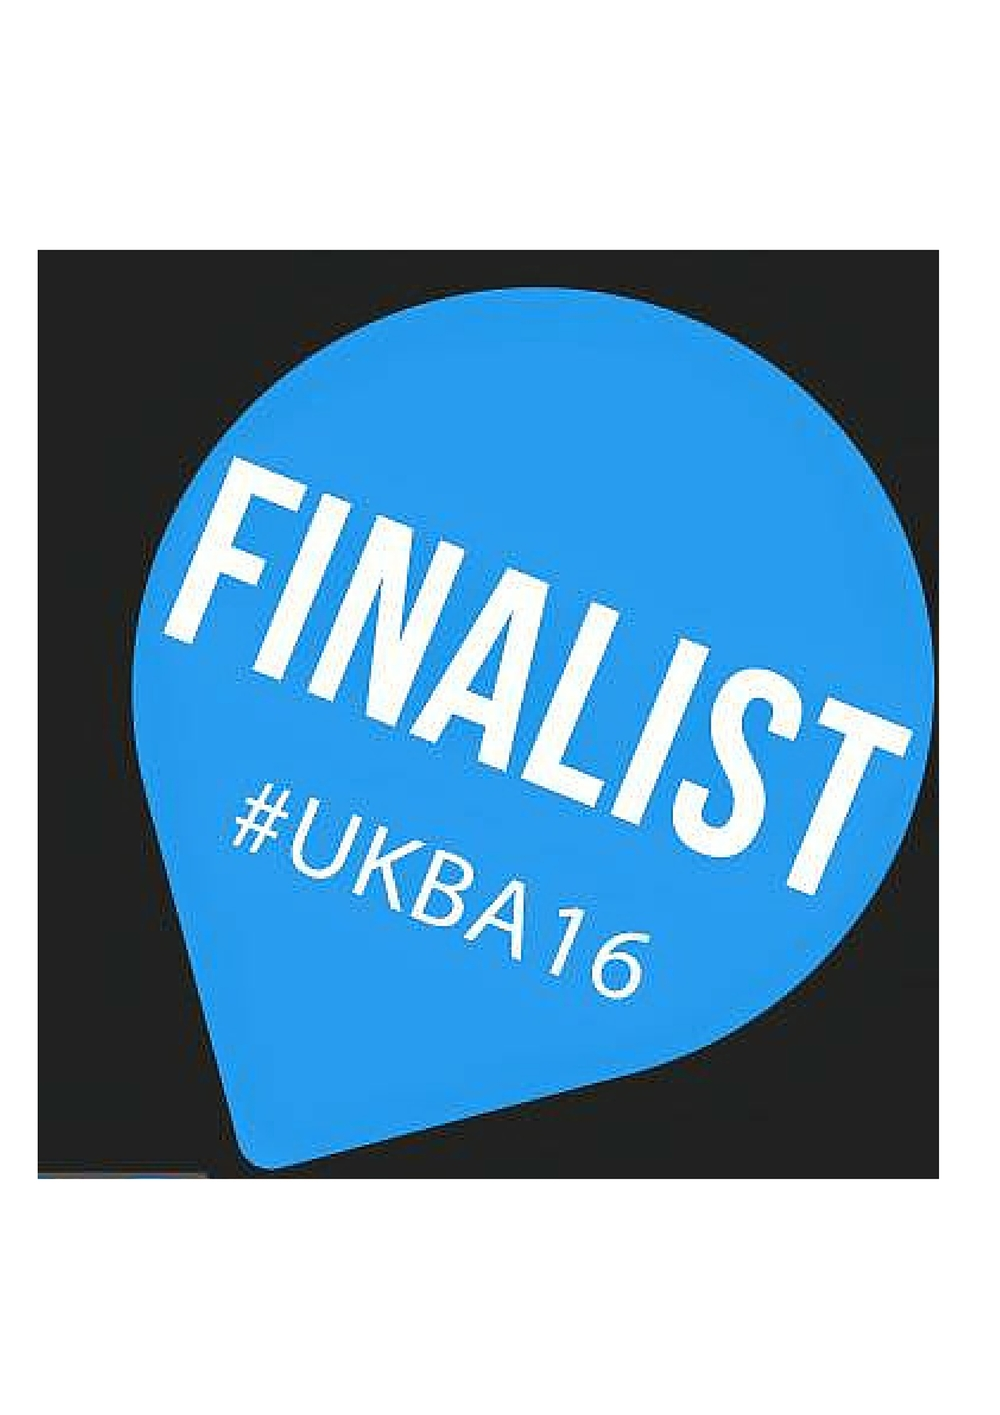 Shortlisted for 'the most innovative' category at The UK Blog Awards 2016